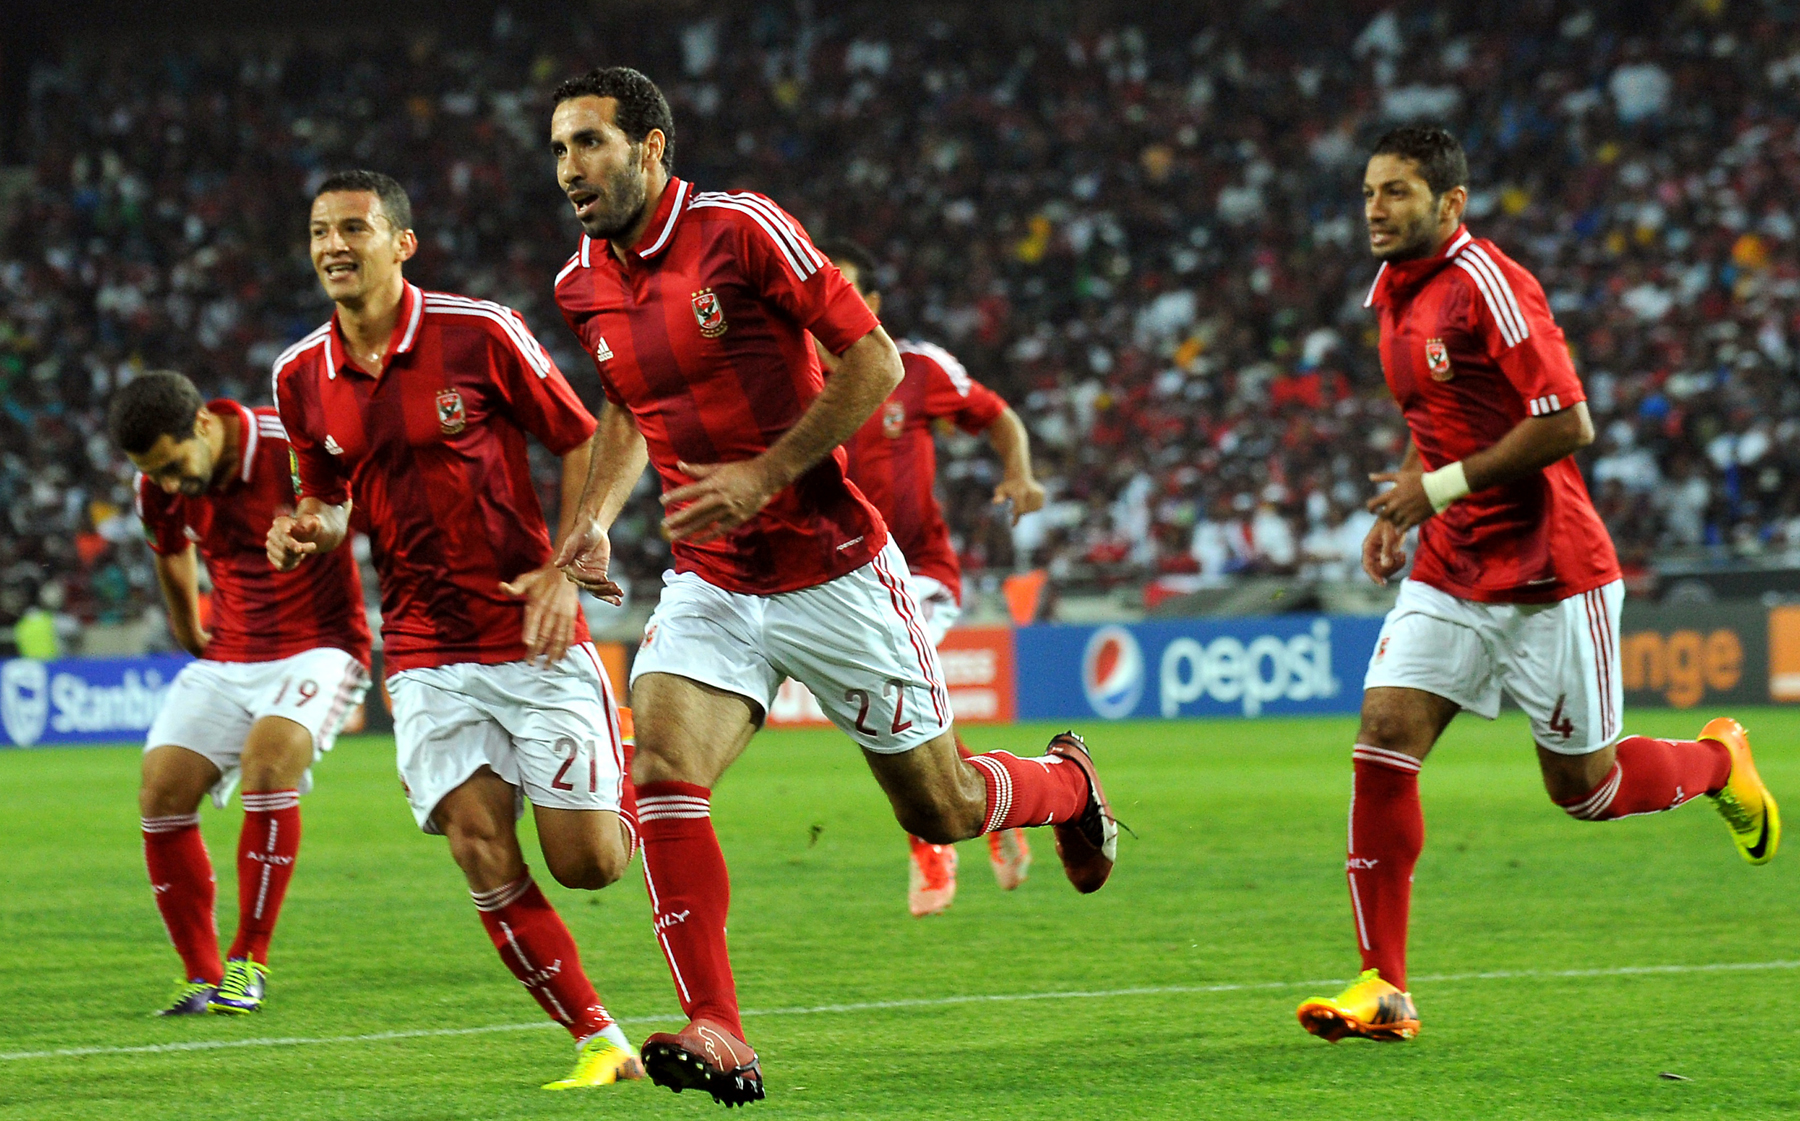 Mohamed Aboutrika Al Ahly Vs Orlando Pirates at the African Champions League 2013